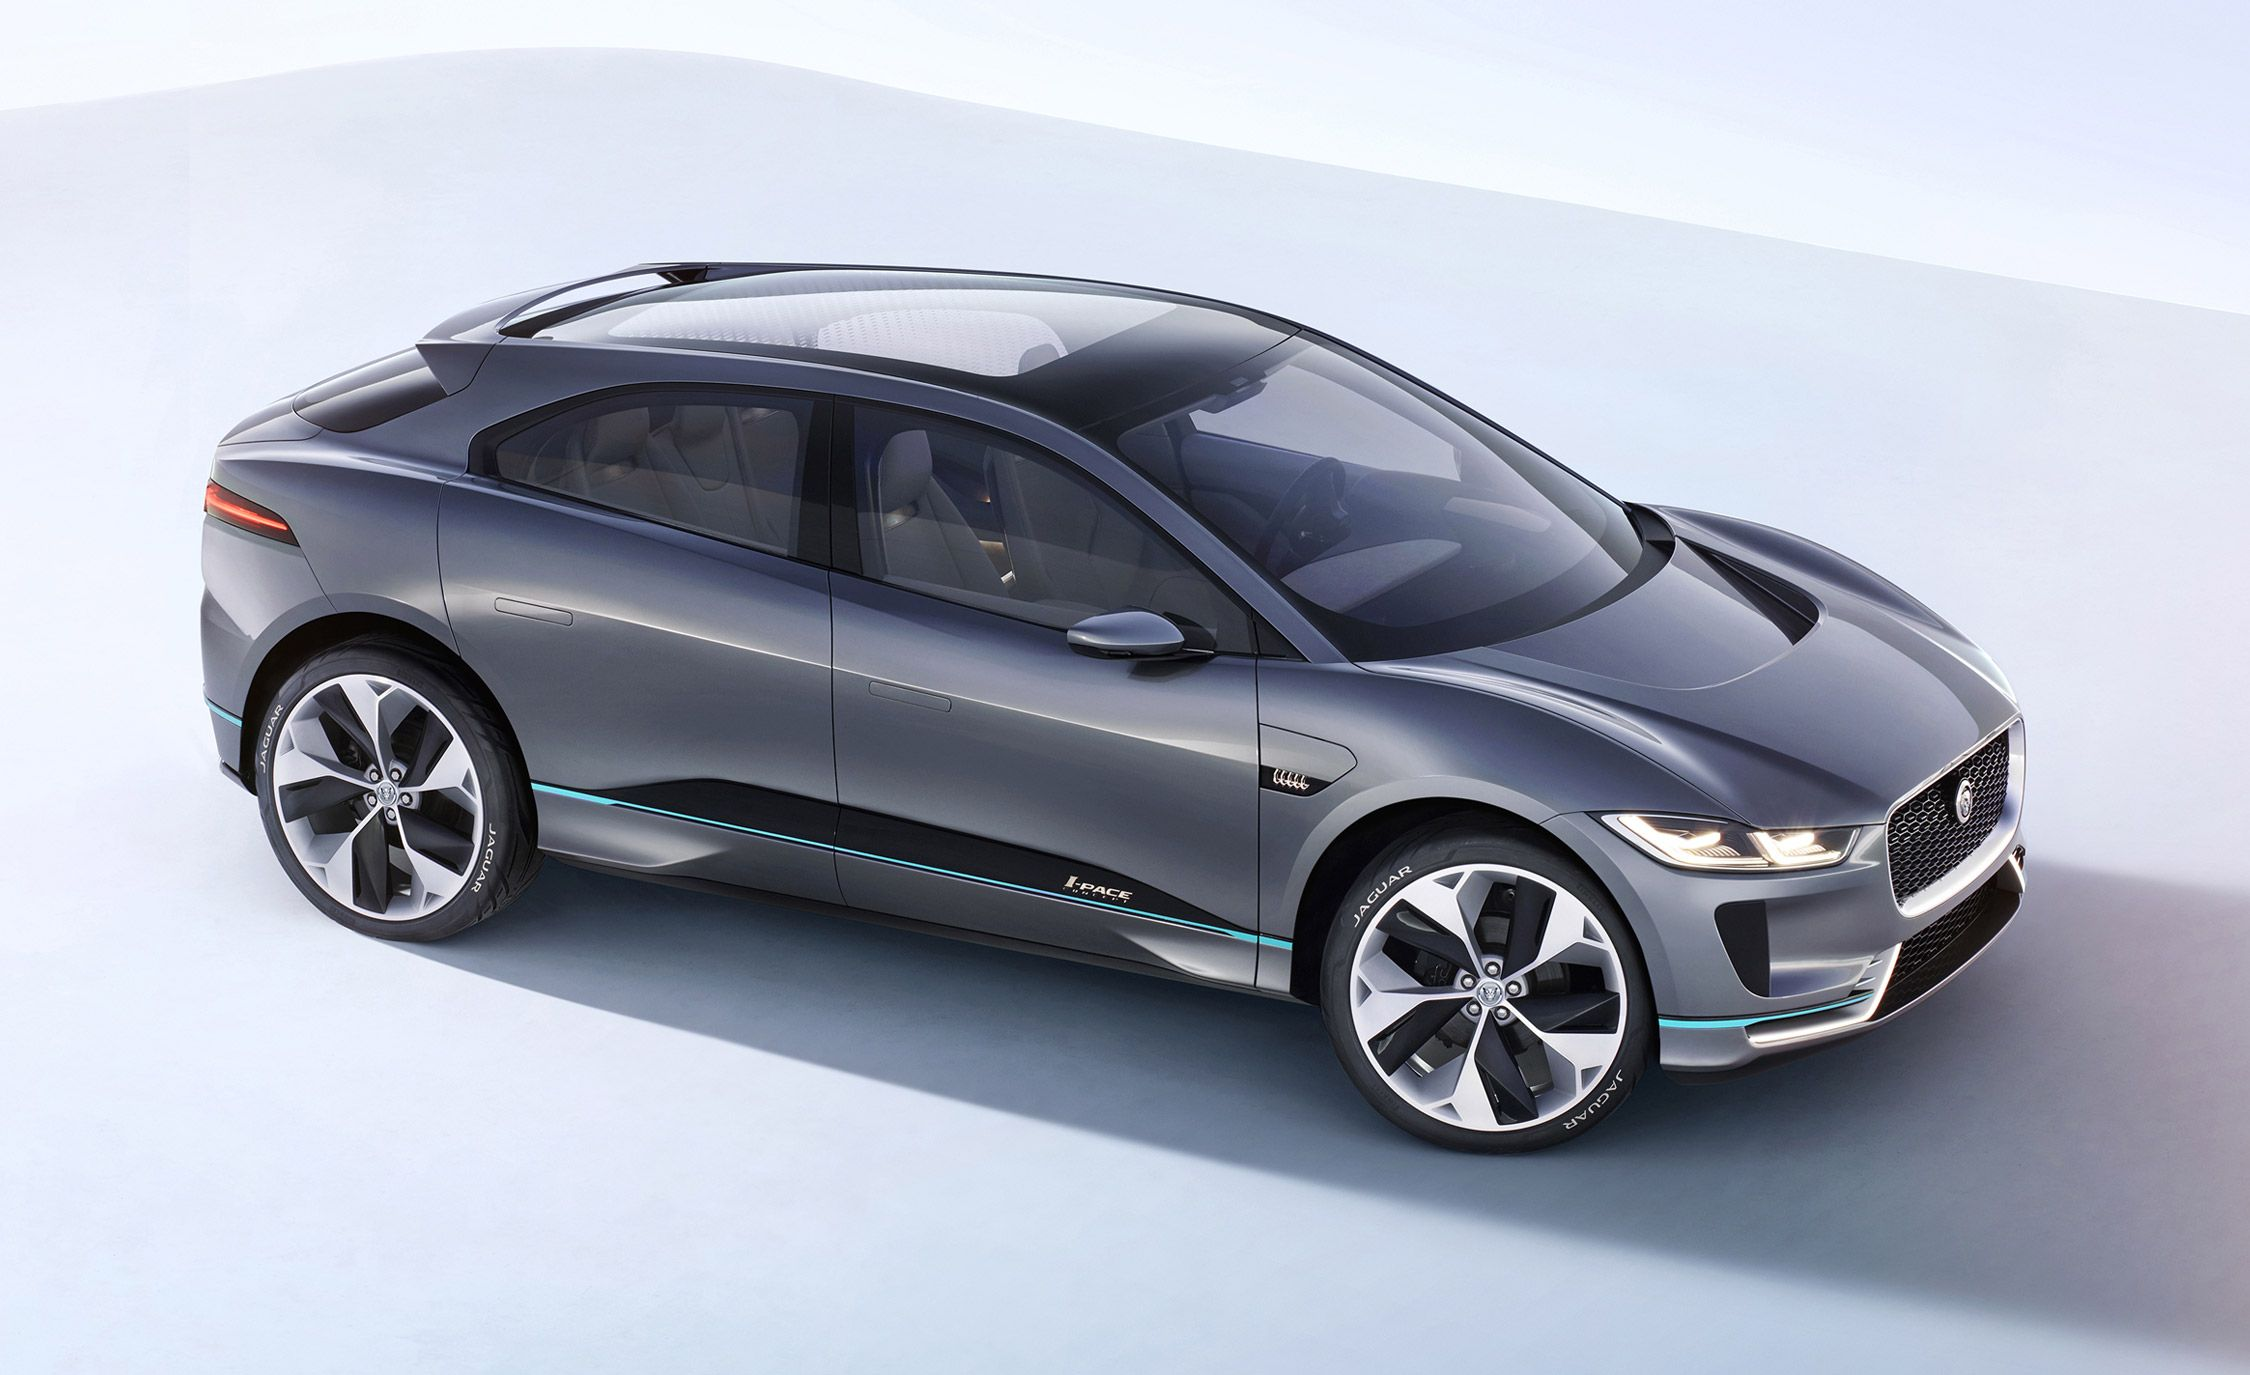 2018 Jaguar I Pace A Gorgeous All Electric Crossover Headed To Dealer Near You